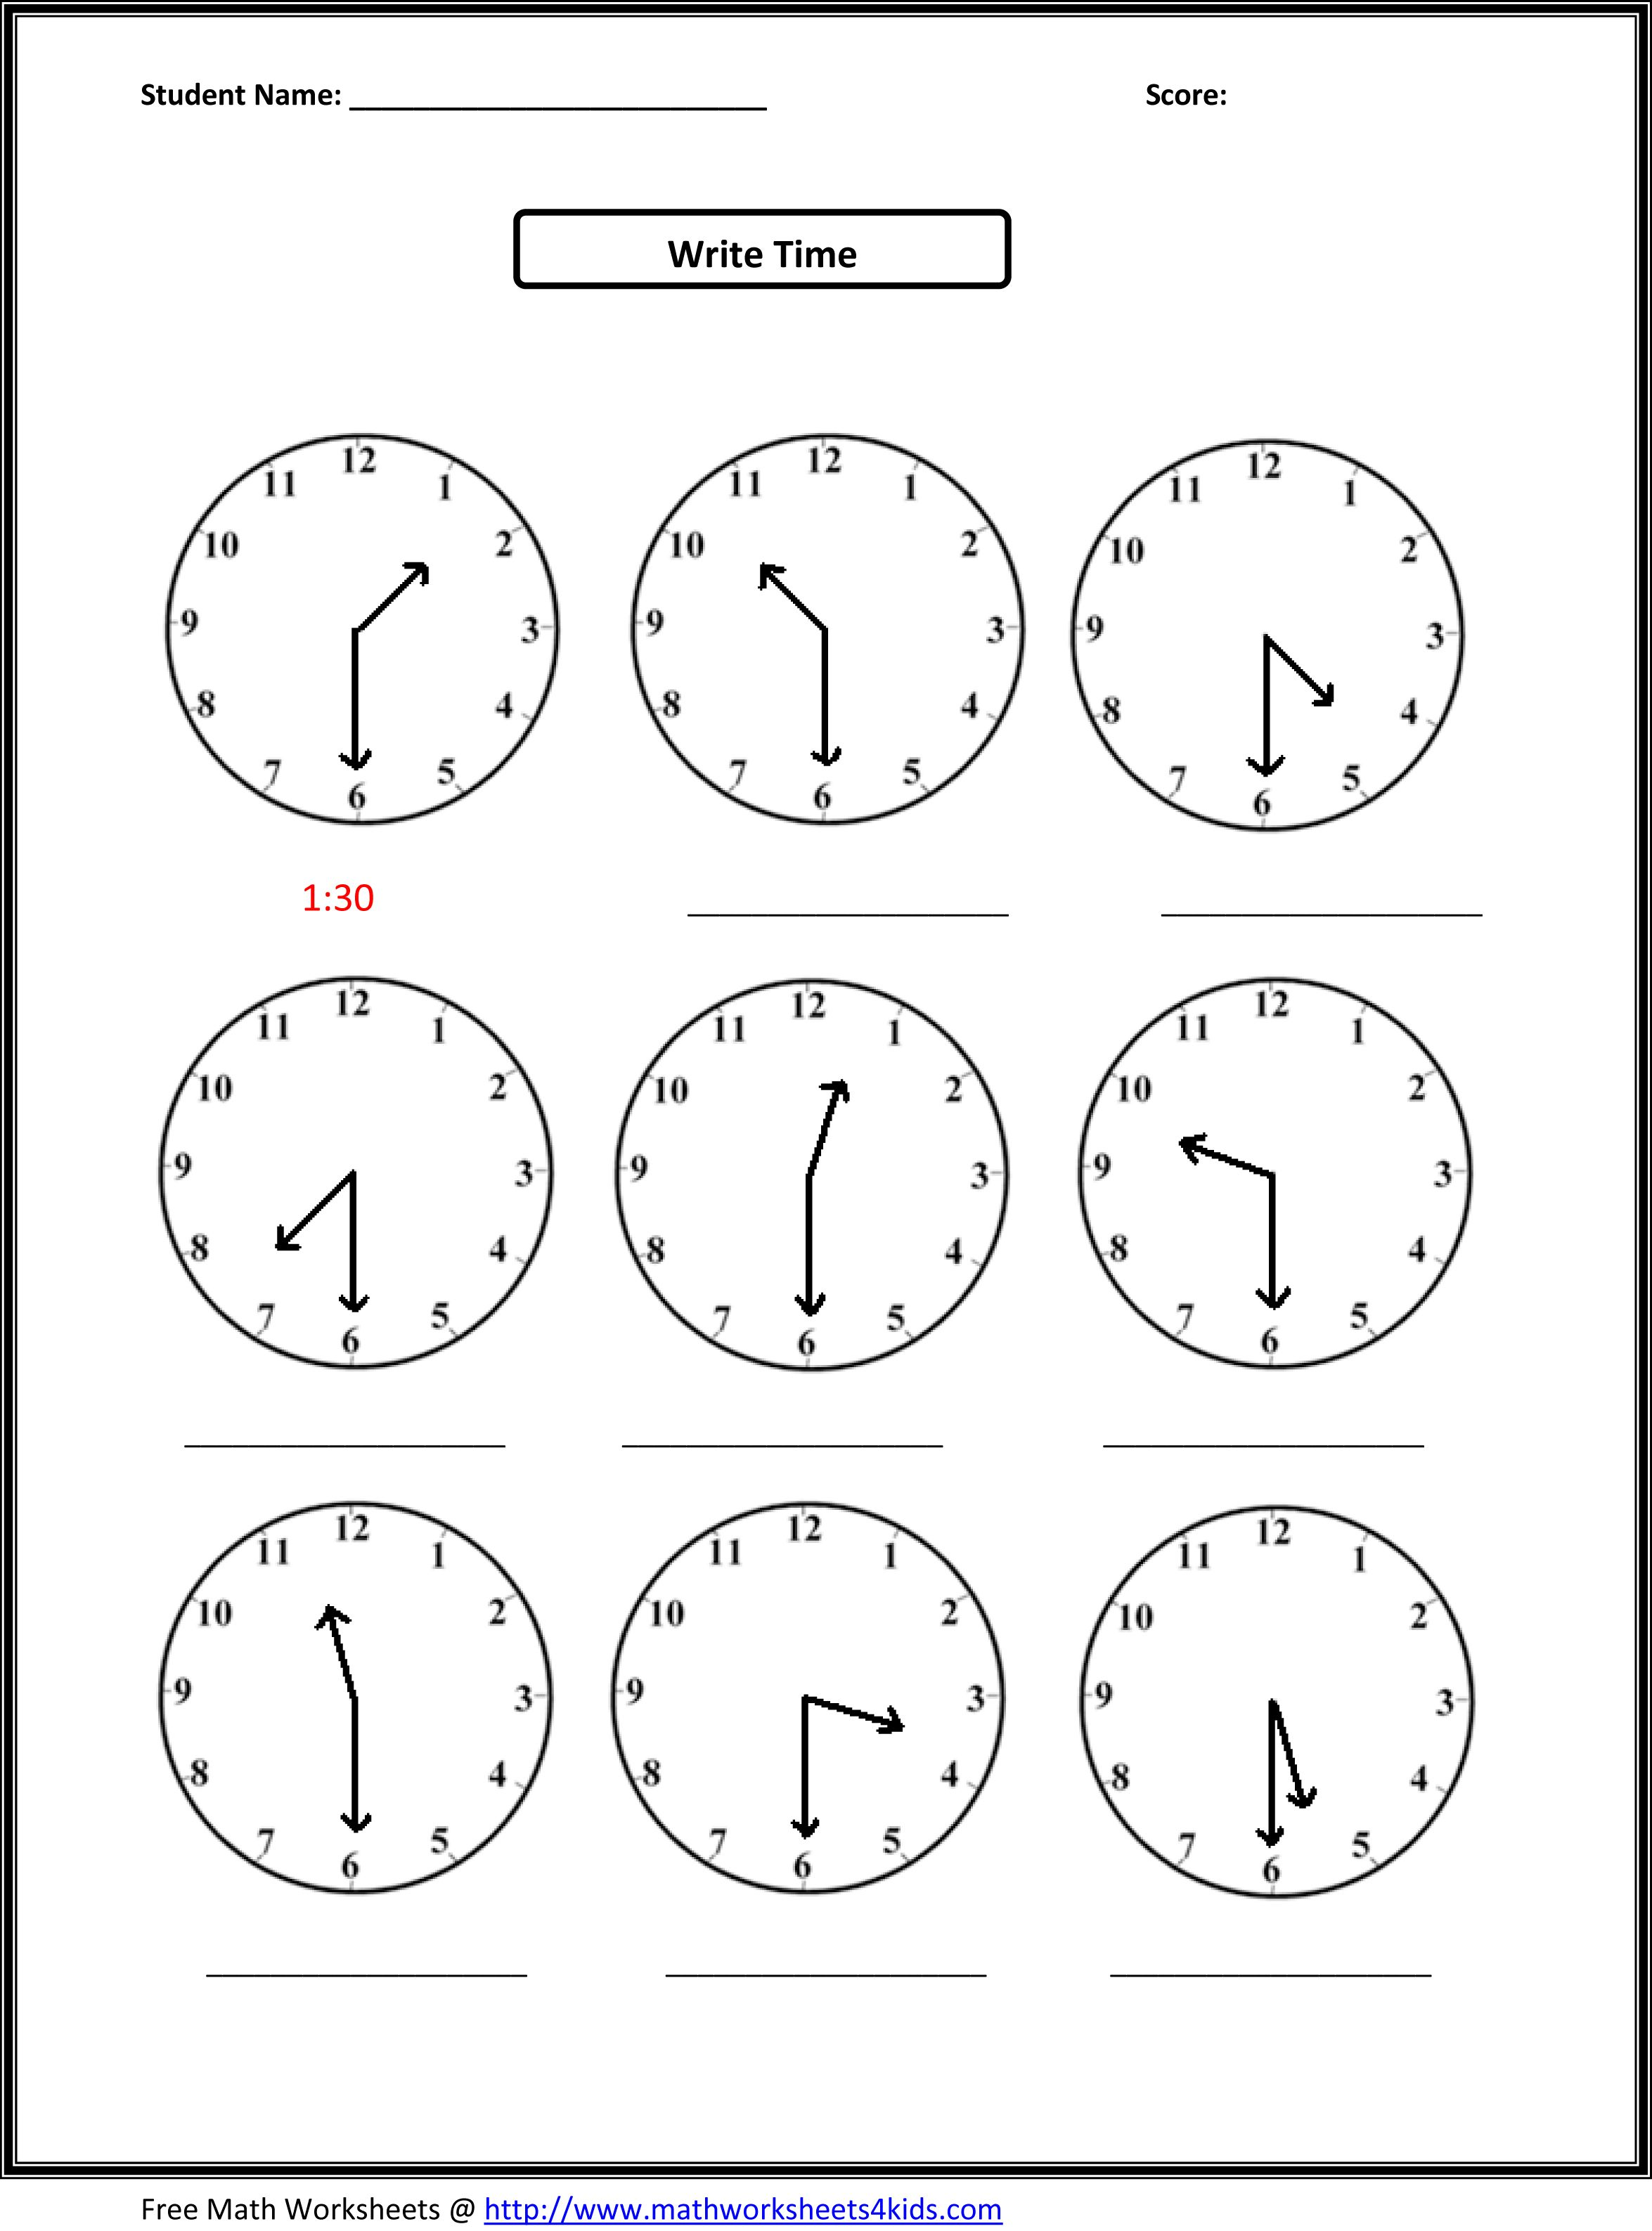 Proatmealus  Stunning Worksheet On Time For Grade   Reocurent With Fetching Free Printable Telling Time Worksheets Nd Grade  Reocurent With Comely Math Worksheets Double Digit Addition Also Plurals And Possessives Worksheets In Addition City Of Ember Worksheets And Recognizing Money Worksheets As Well As Commutative Property Of Addition Worksheets St Grade Additionally Tornado Worksheets For Kids From Reocurentcom With Proatmealus  Fetching Worksheet On Time For Grade   Reocurent With Comely Free Printable Telling Time Worksheets Nd Grade  Reocurent And Stunning Math Worksheets Double Digit Addition Also Plurals And Possessives Worksheets In Addition City Of Ember Worksheets From Reocurentcom